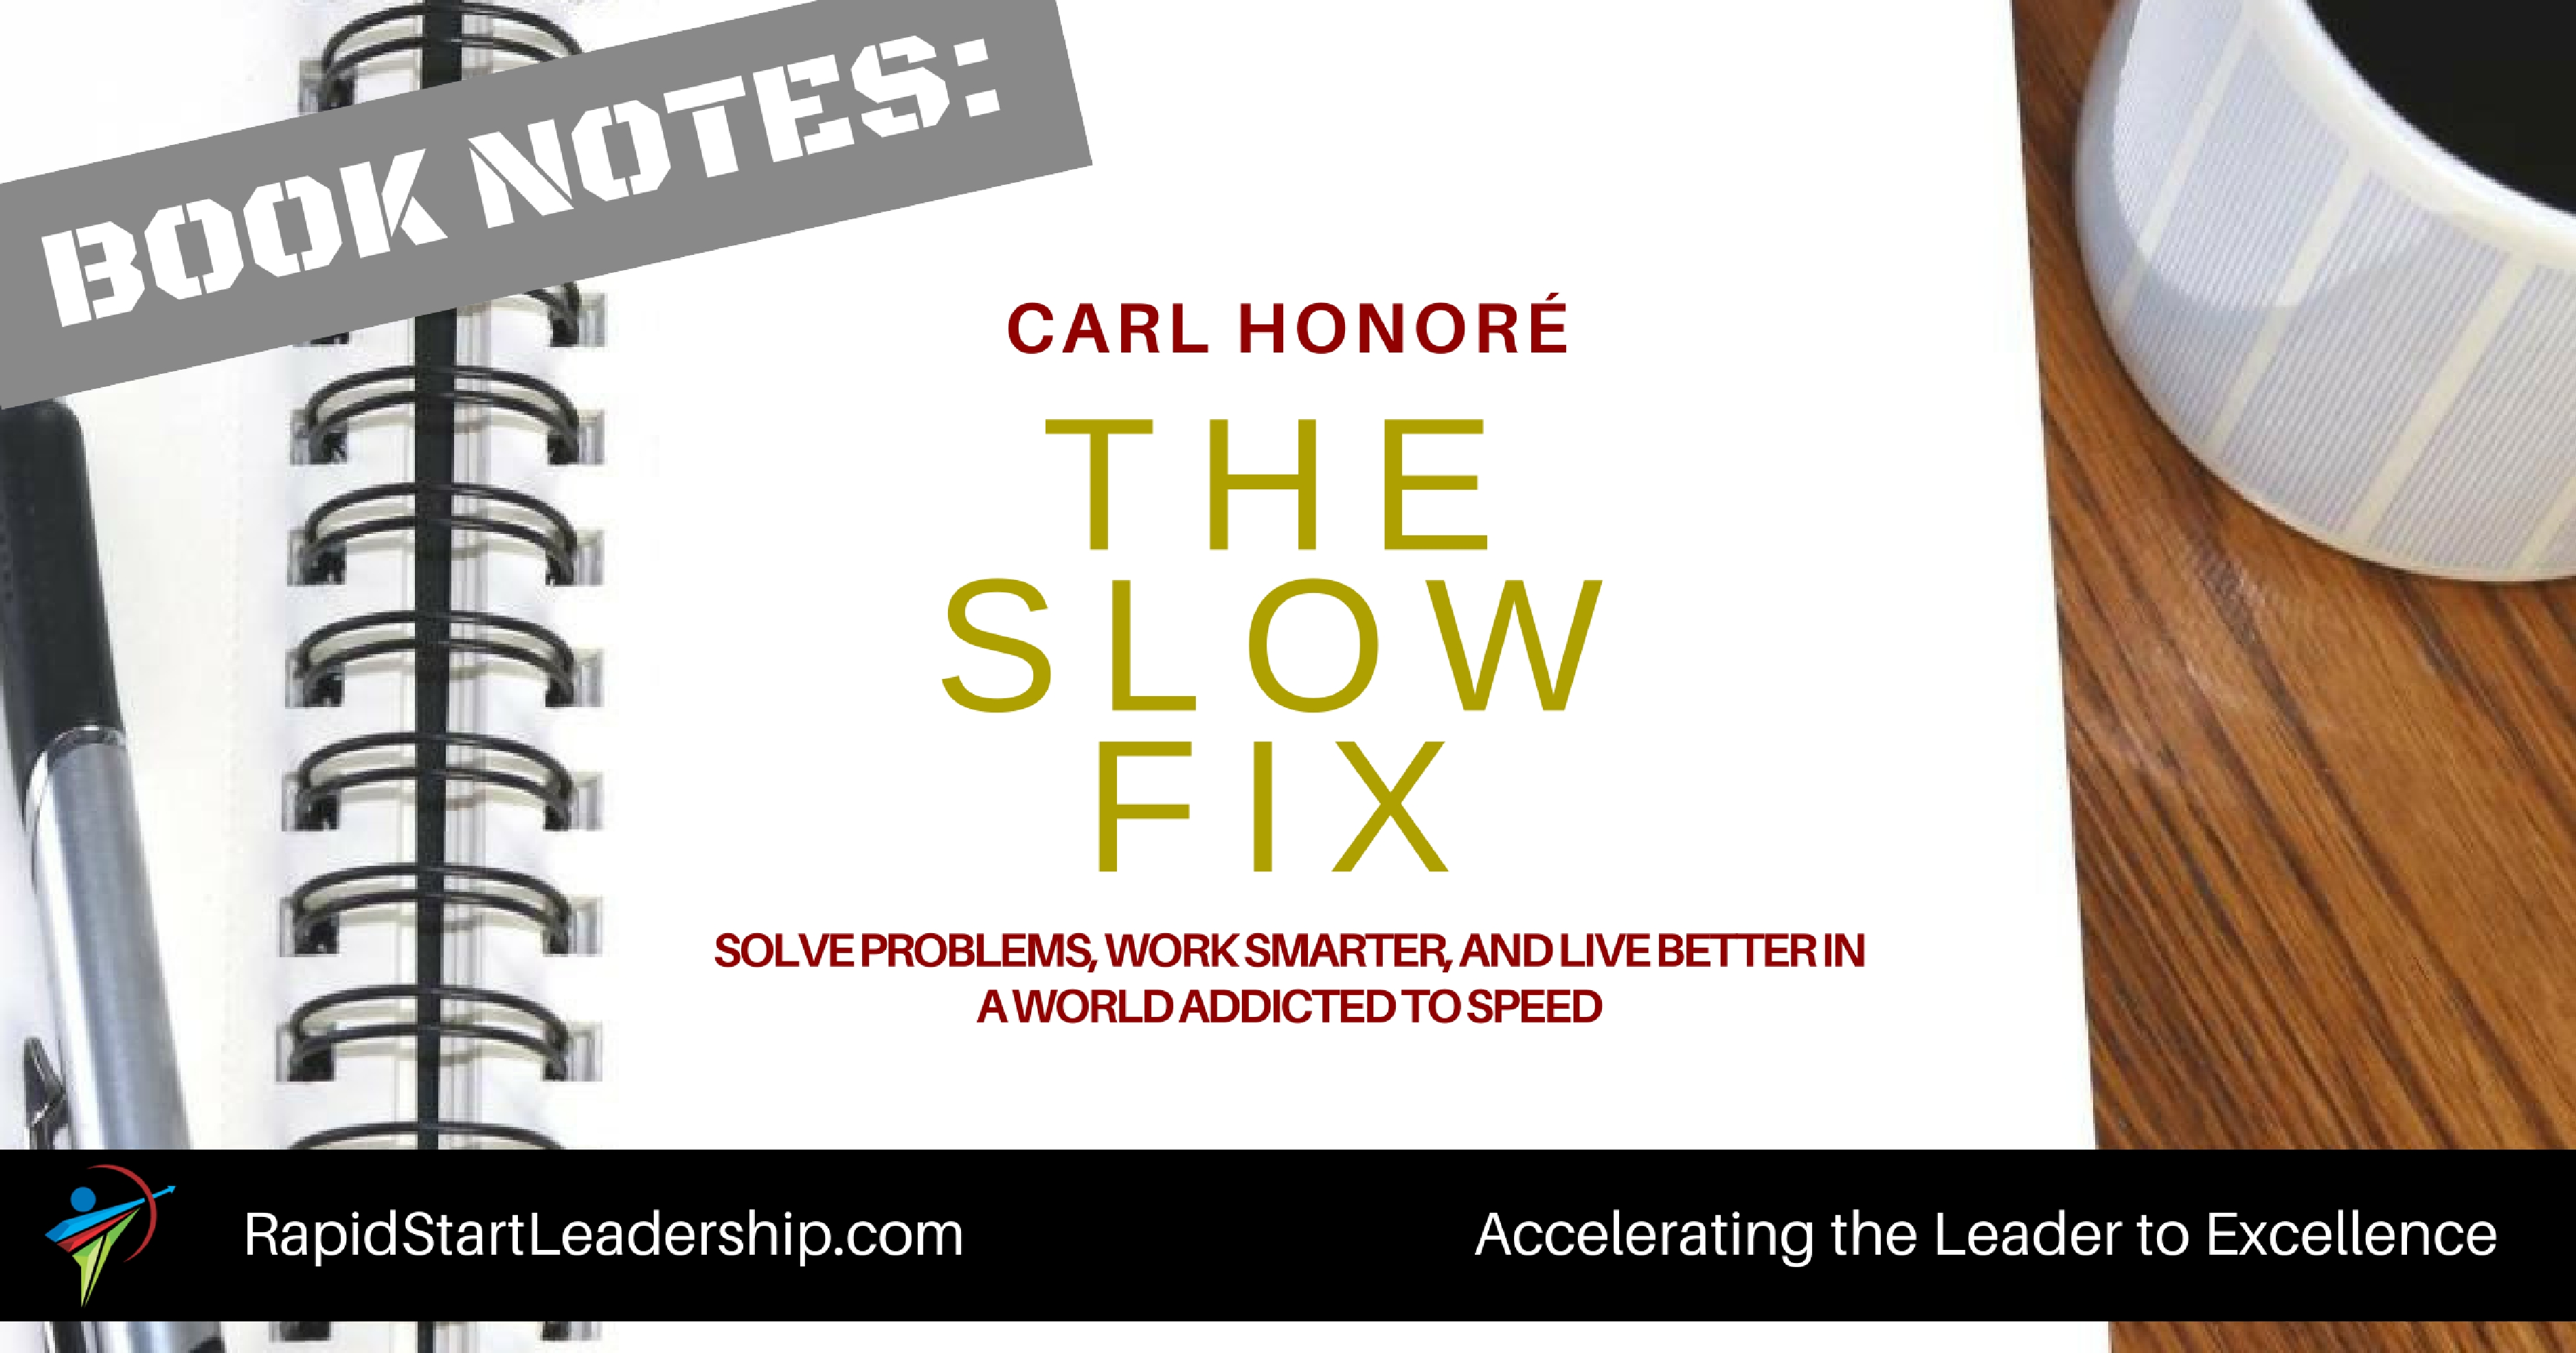 The Slow Fix - Carl Honore